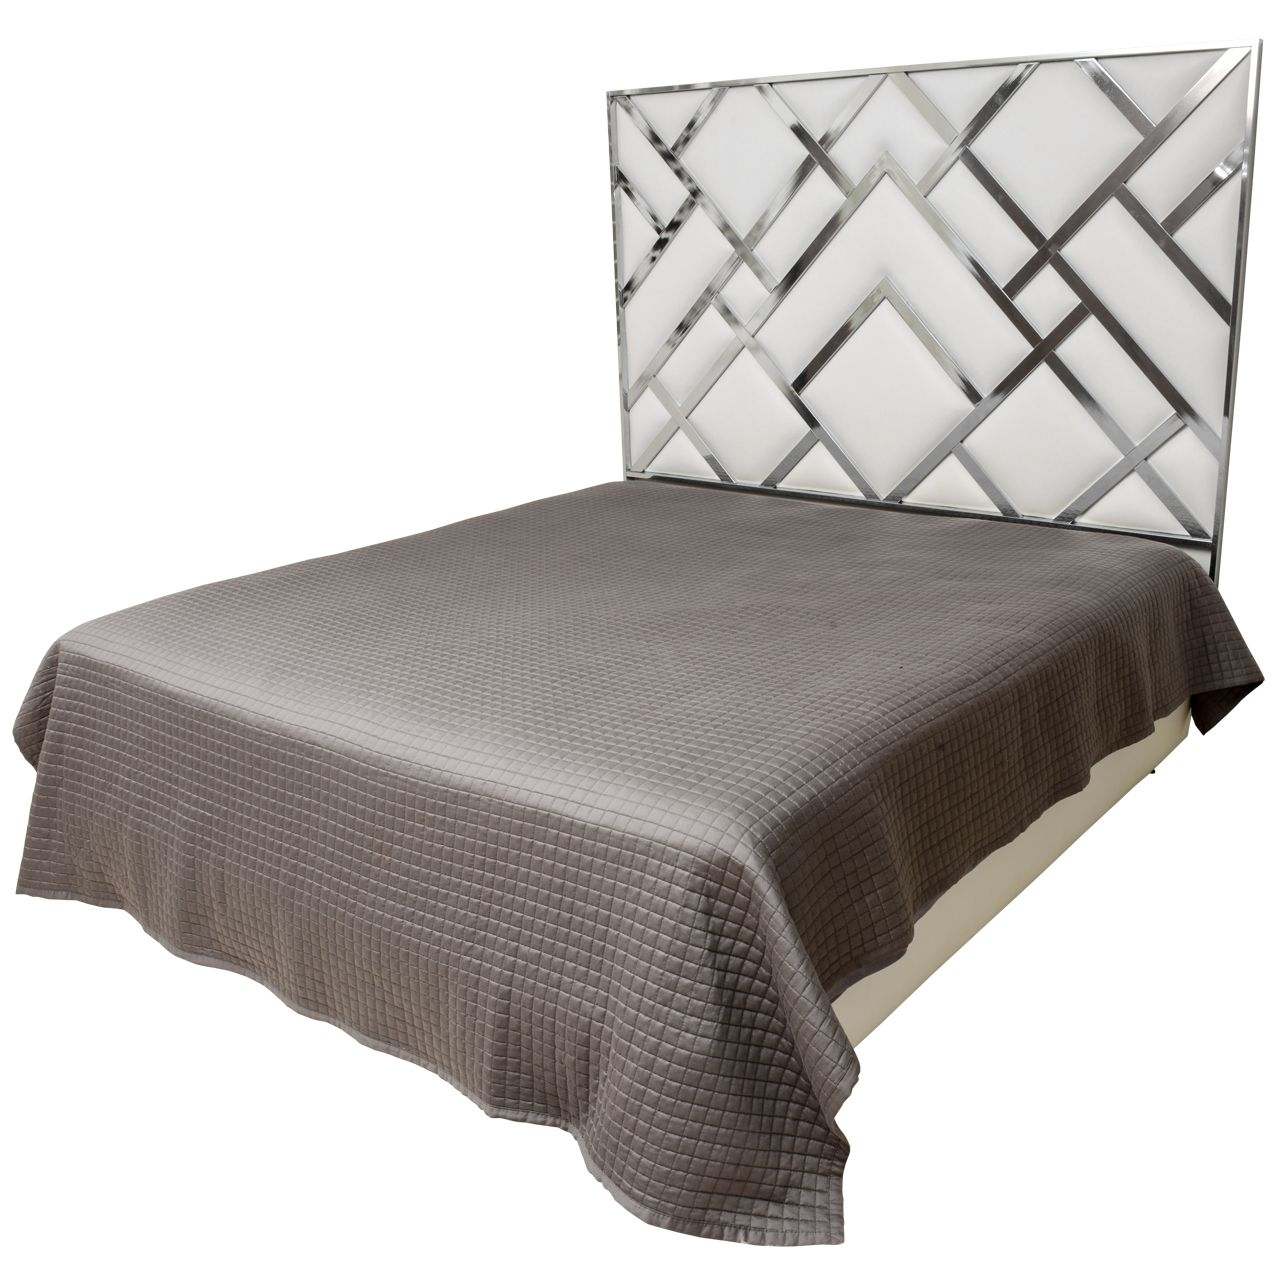 King Size D I A Headboard In Chrome And Faux Leather From A